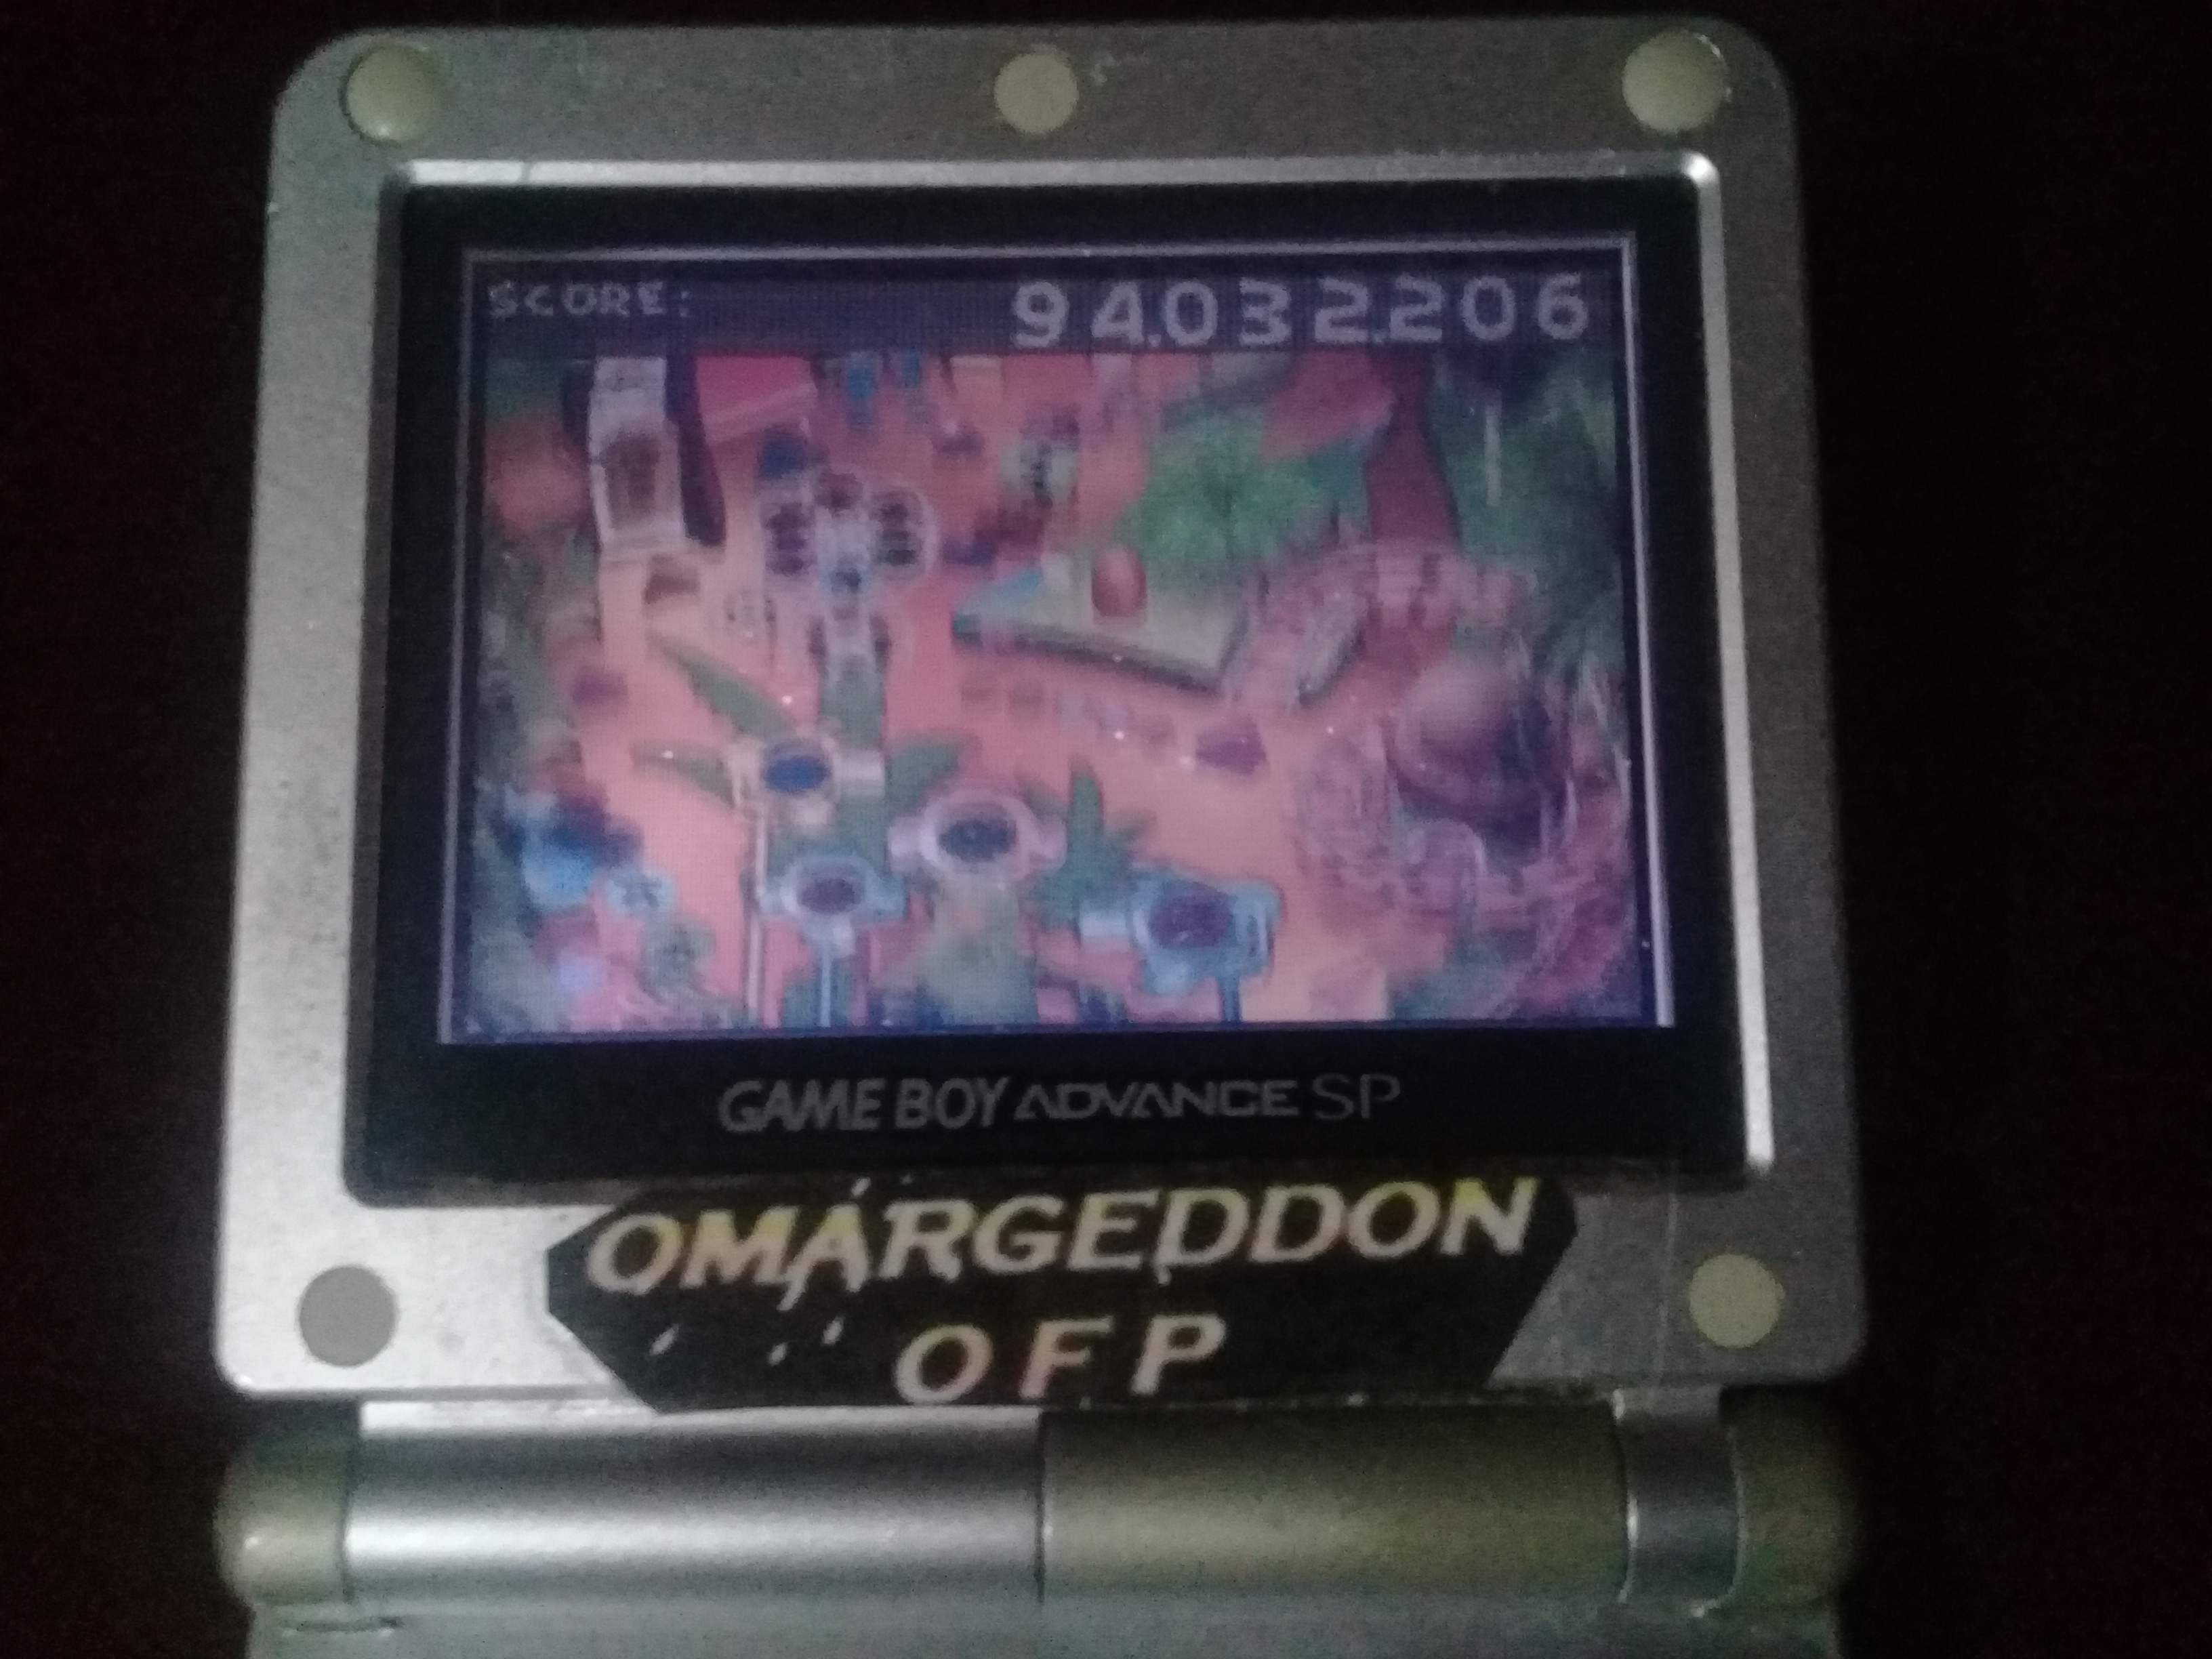 omargeddon: Muppet Pinball Mayhem: Kermit [5 Balls] (GBA) 94,032,206 points on 2019-11-11 09:38:18